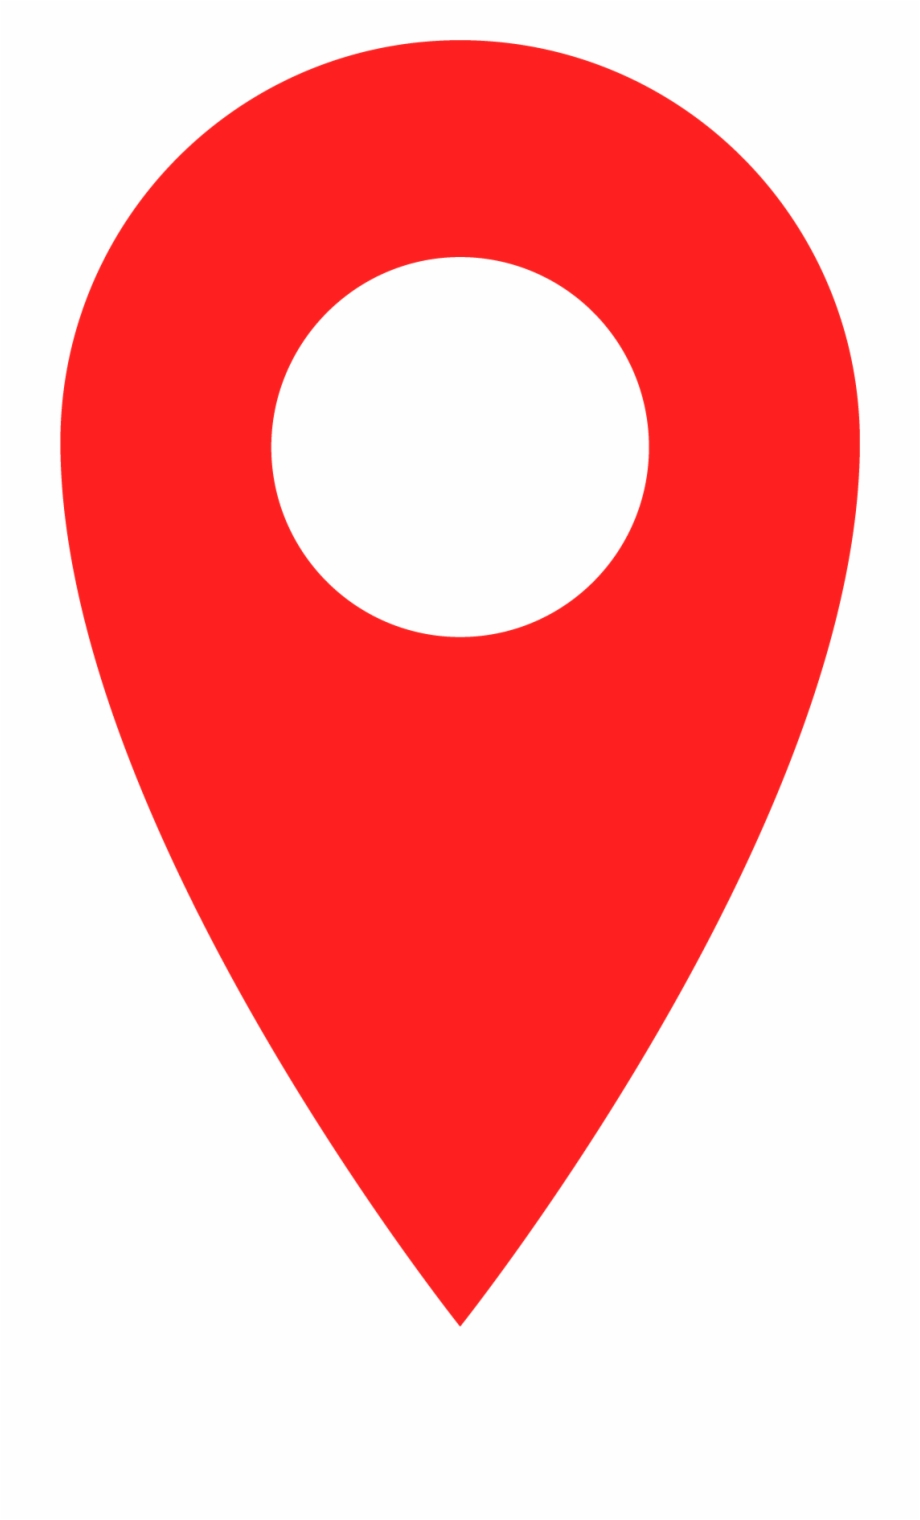 Free Gps Icon Png, Download Free Clip Art, Free Clip Art on.